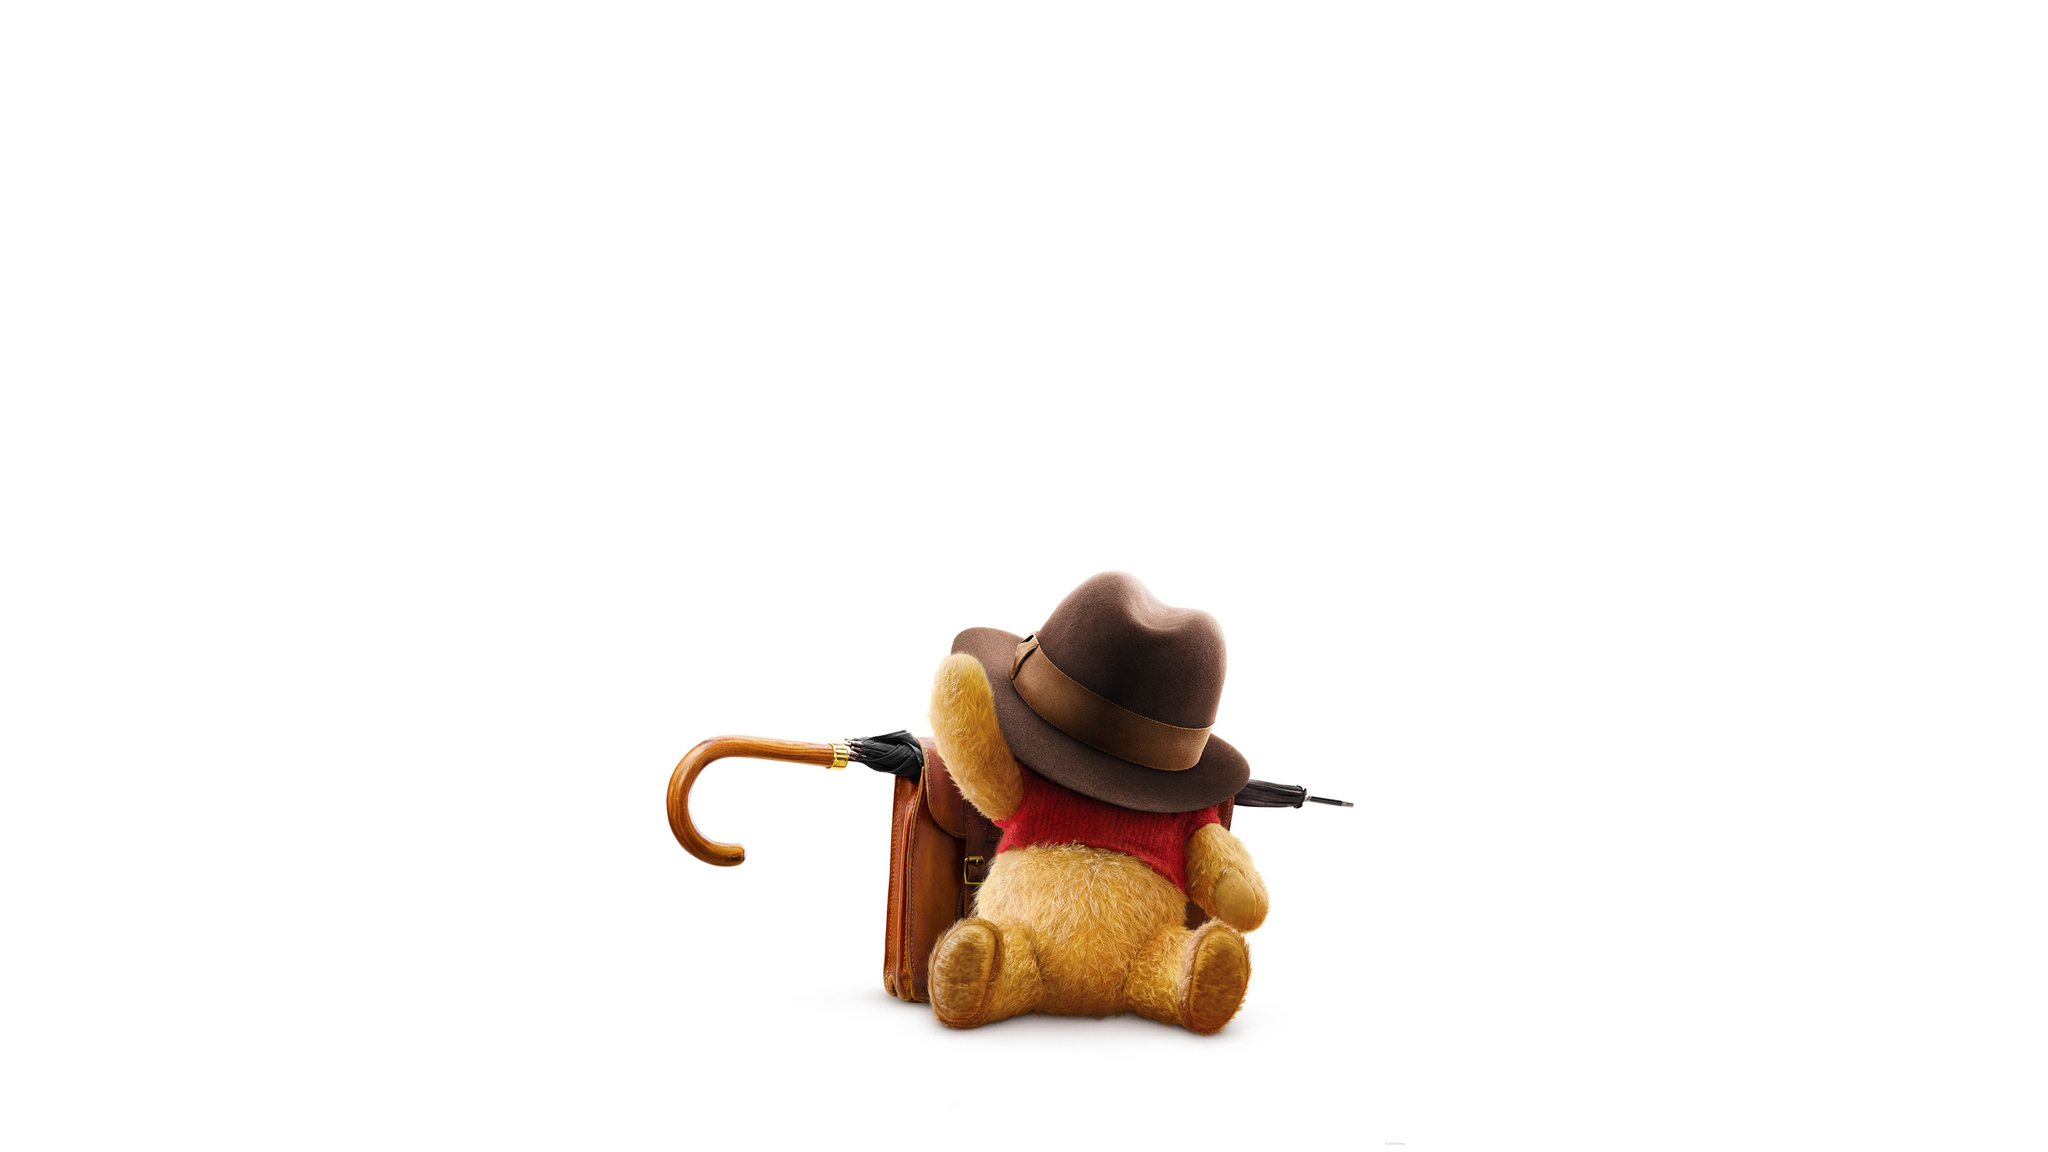 2048x1152 christopher robin 2018 movie winnie the pooh poster 4k christopher robin 2018 movie winnie the pooh poster voltagebd Image collections